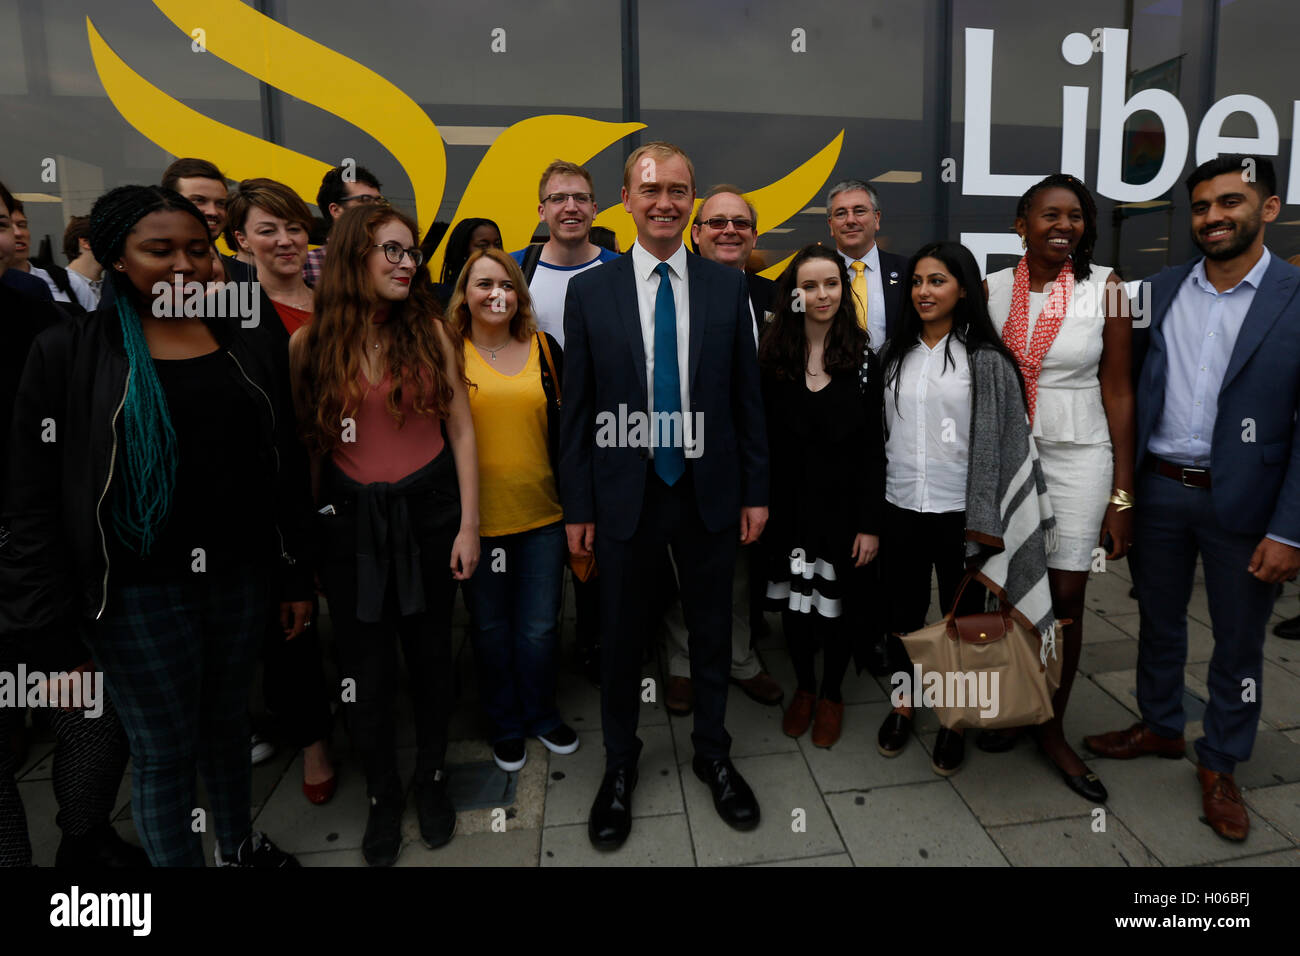 Brighton, UK 20th Sep, 2016 Tim Farron, Party Leader arrives with party members to give his keynote speech during - Stock Image